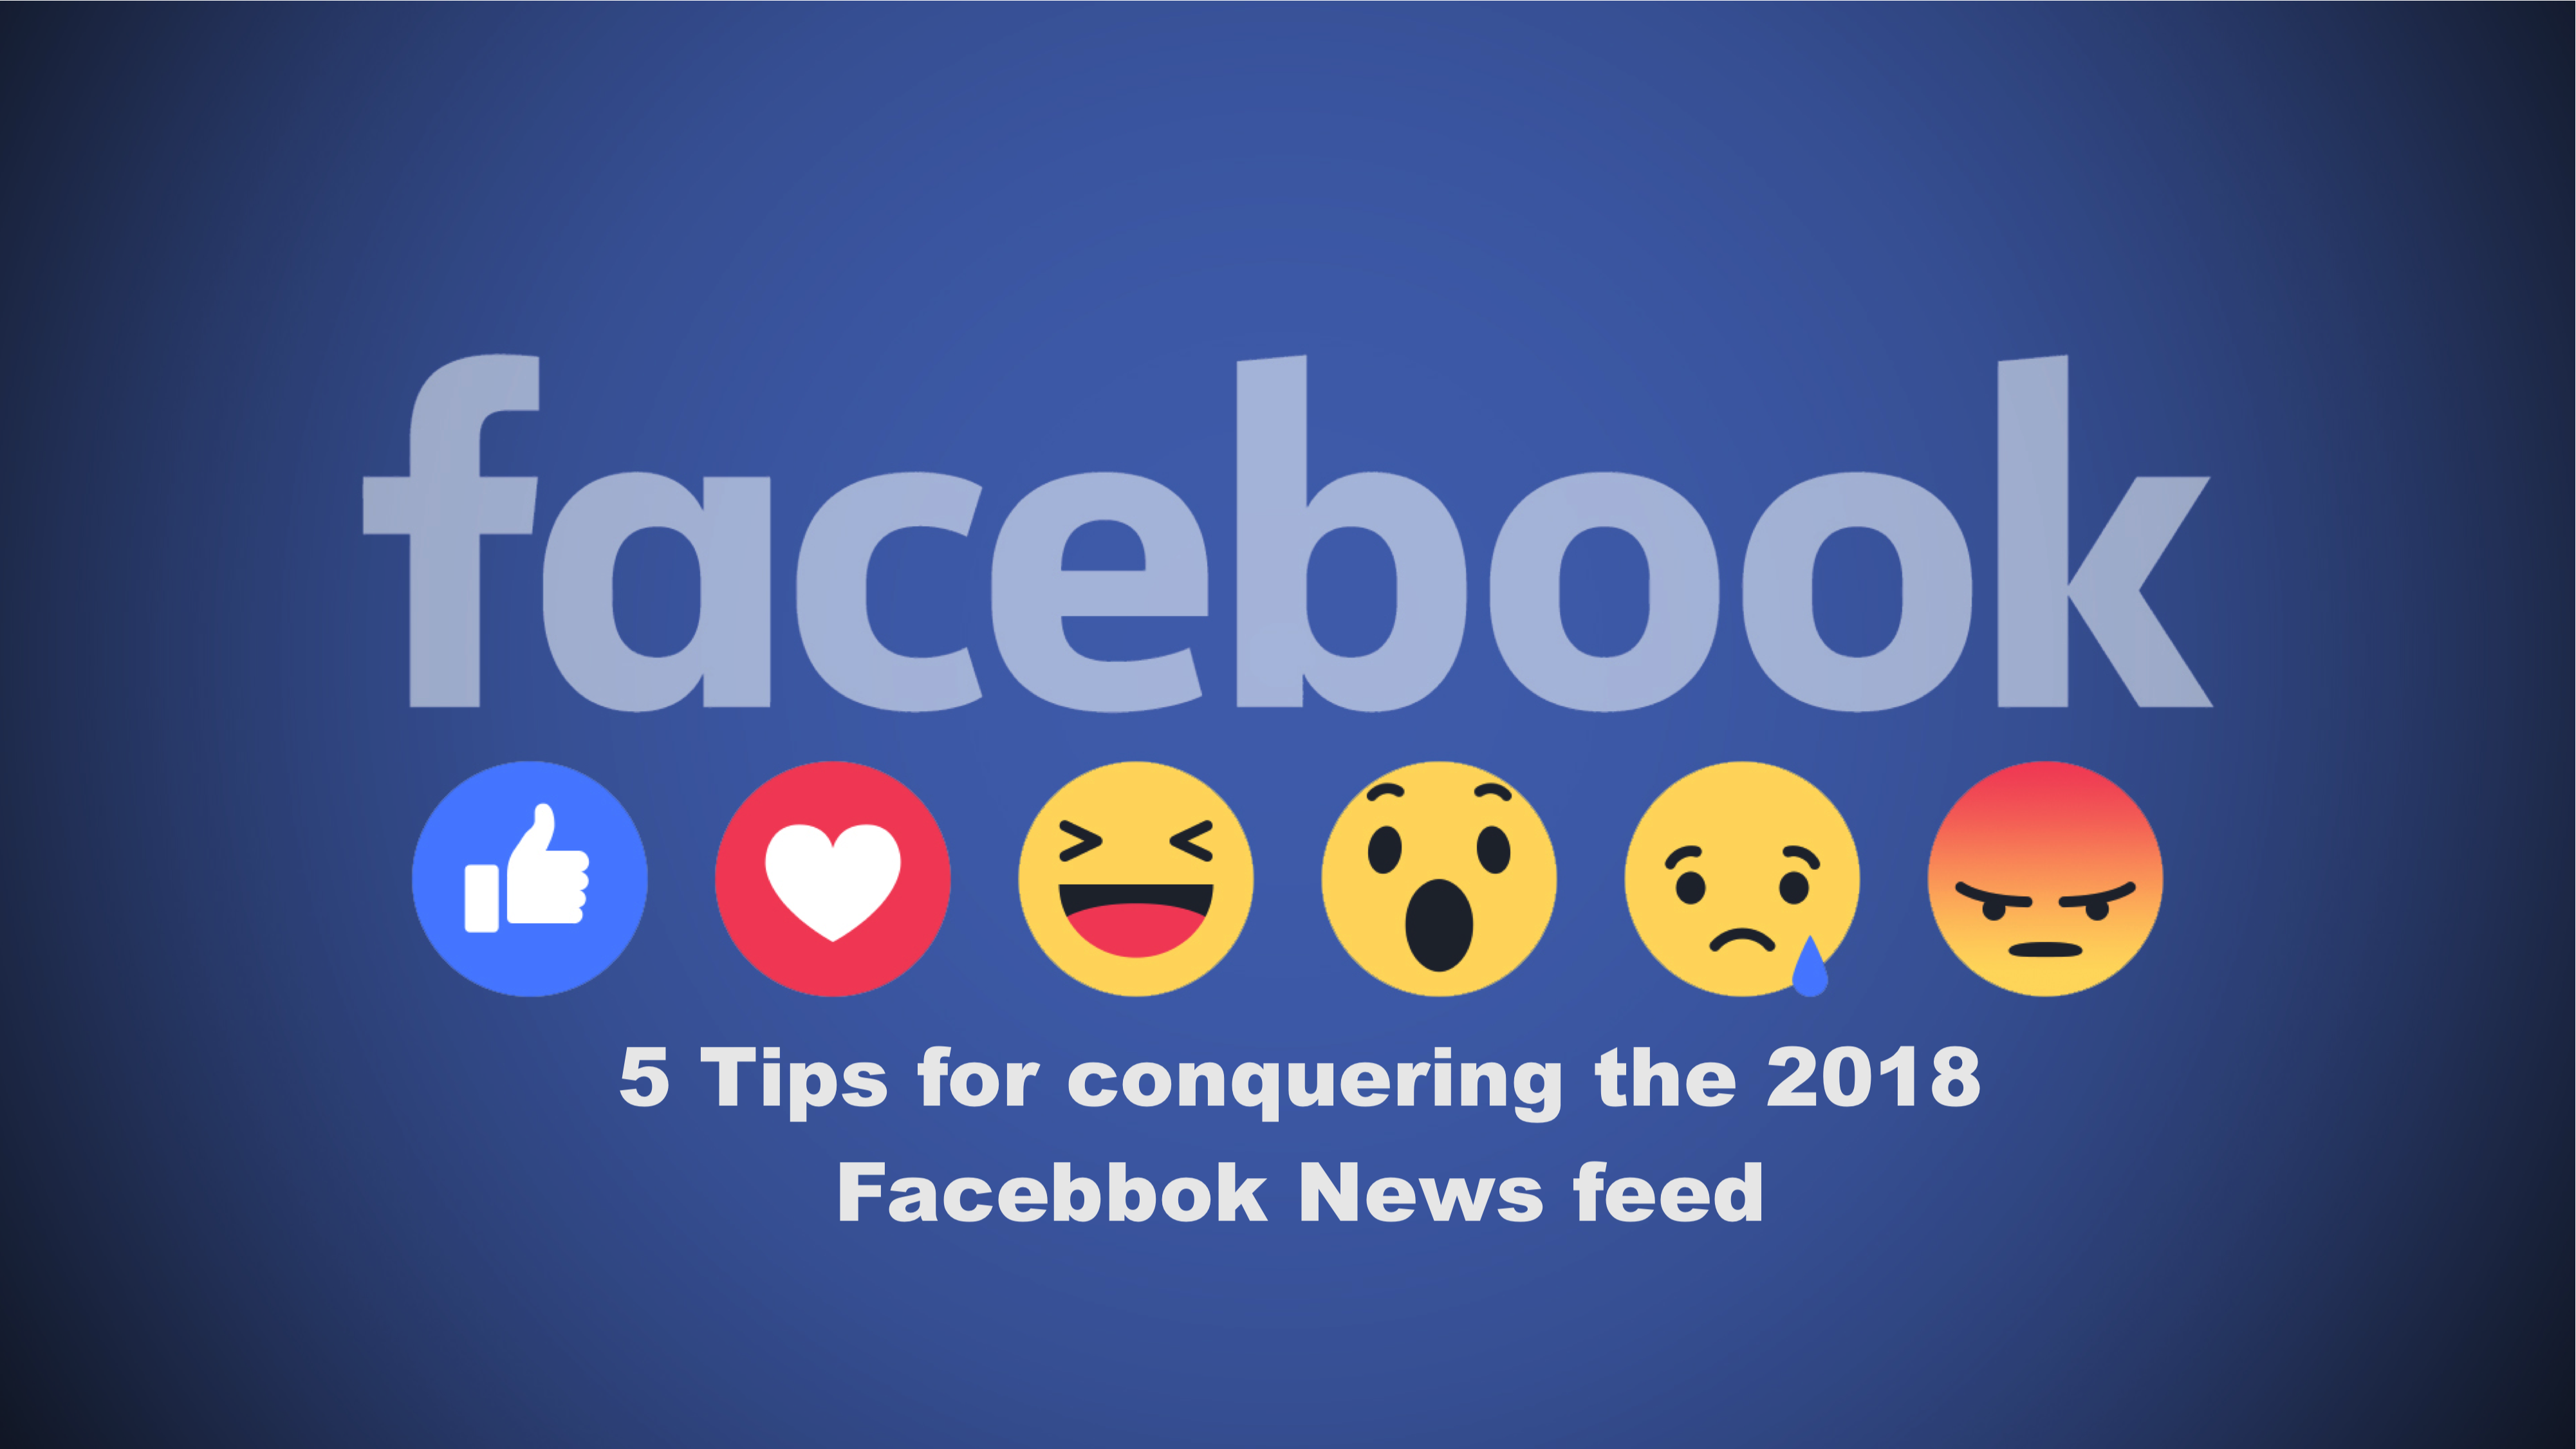 5 Tips for Conquering the Latest Facebook News Feed Changes